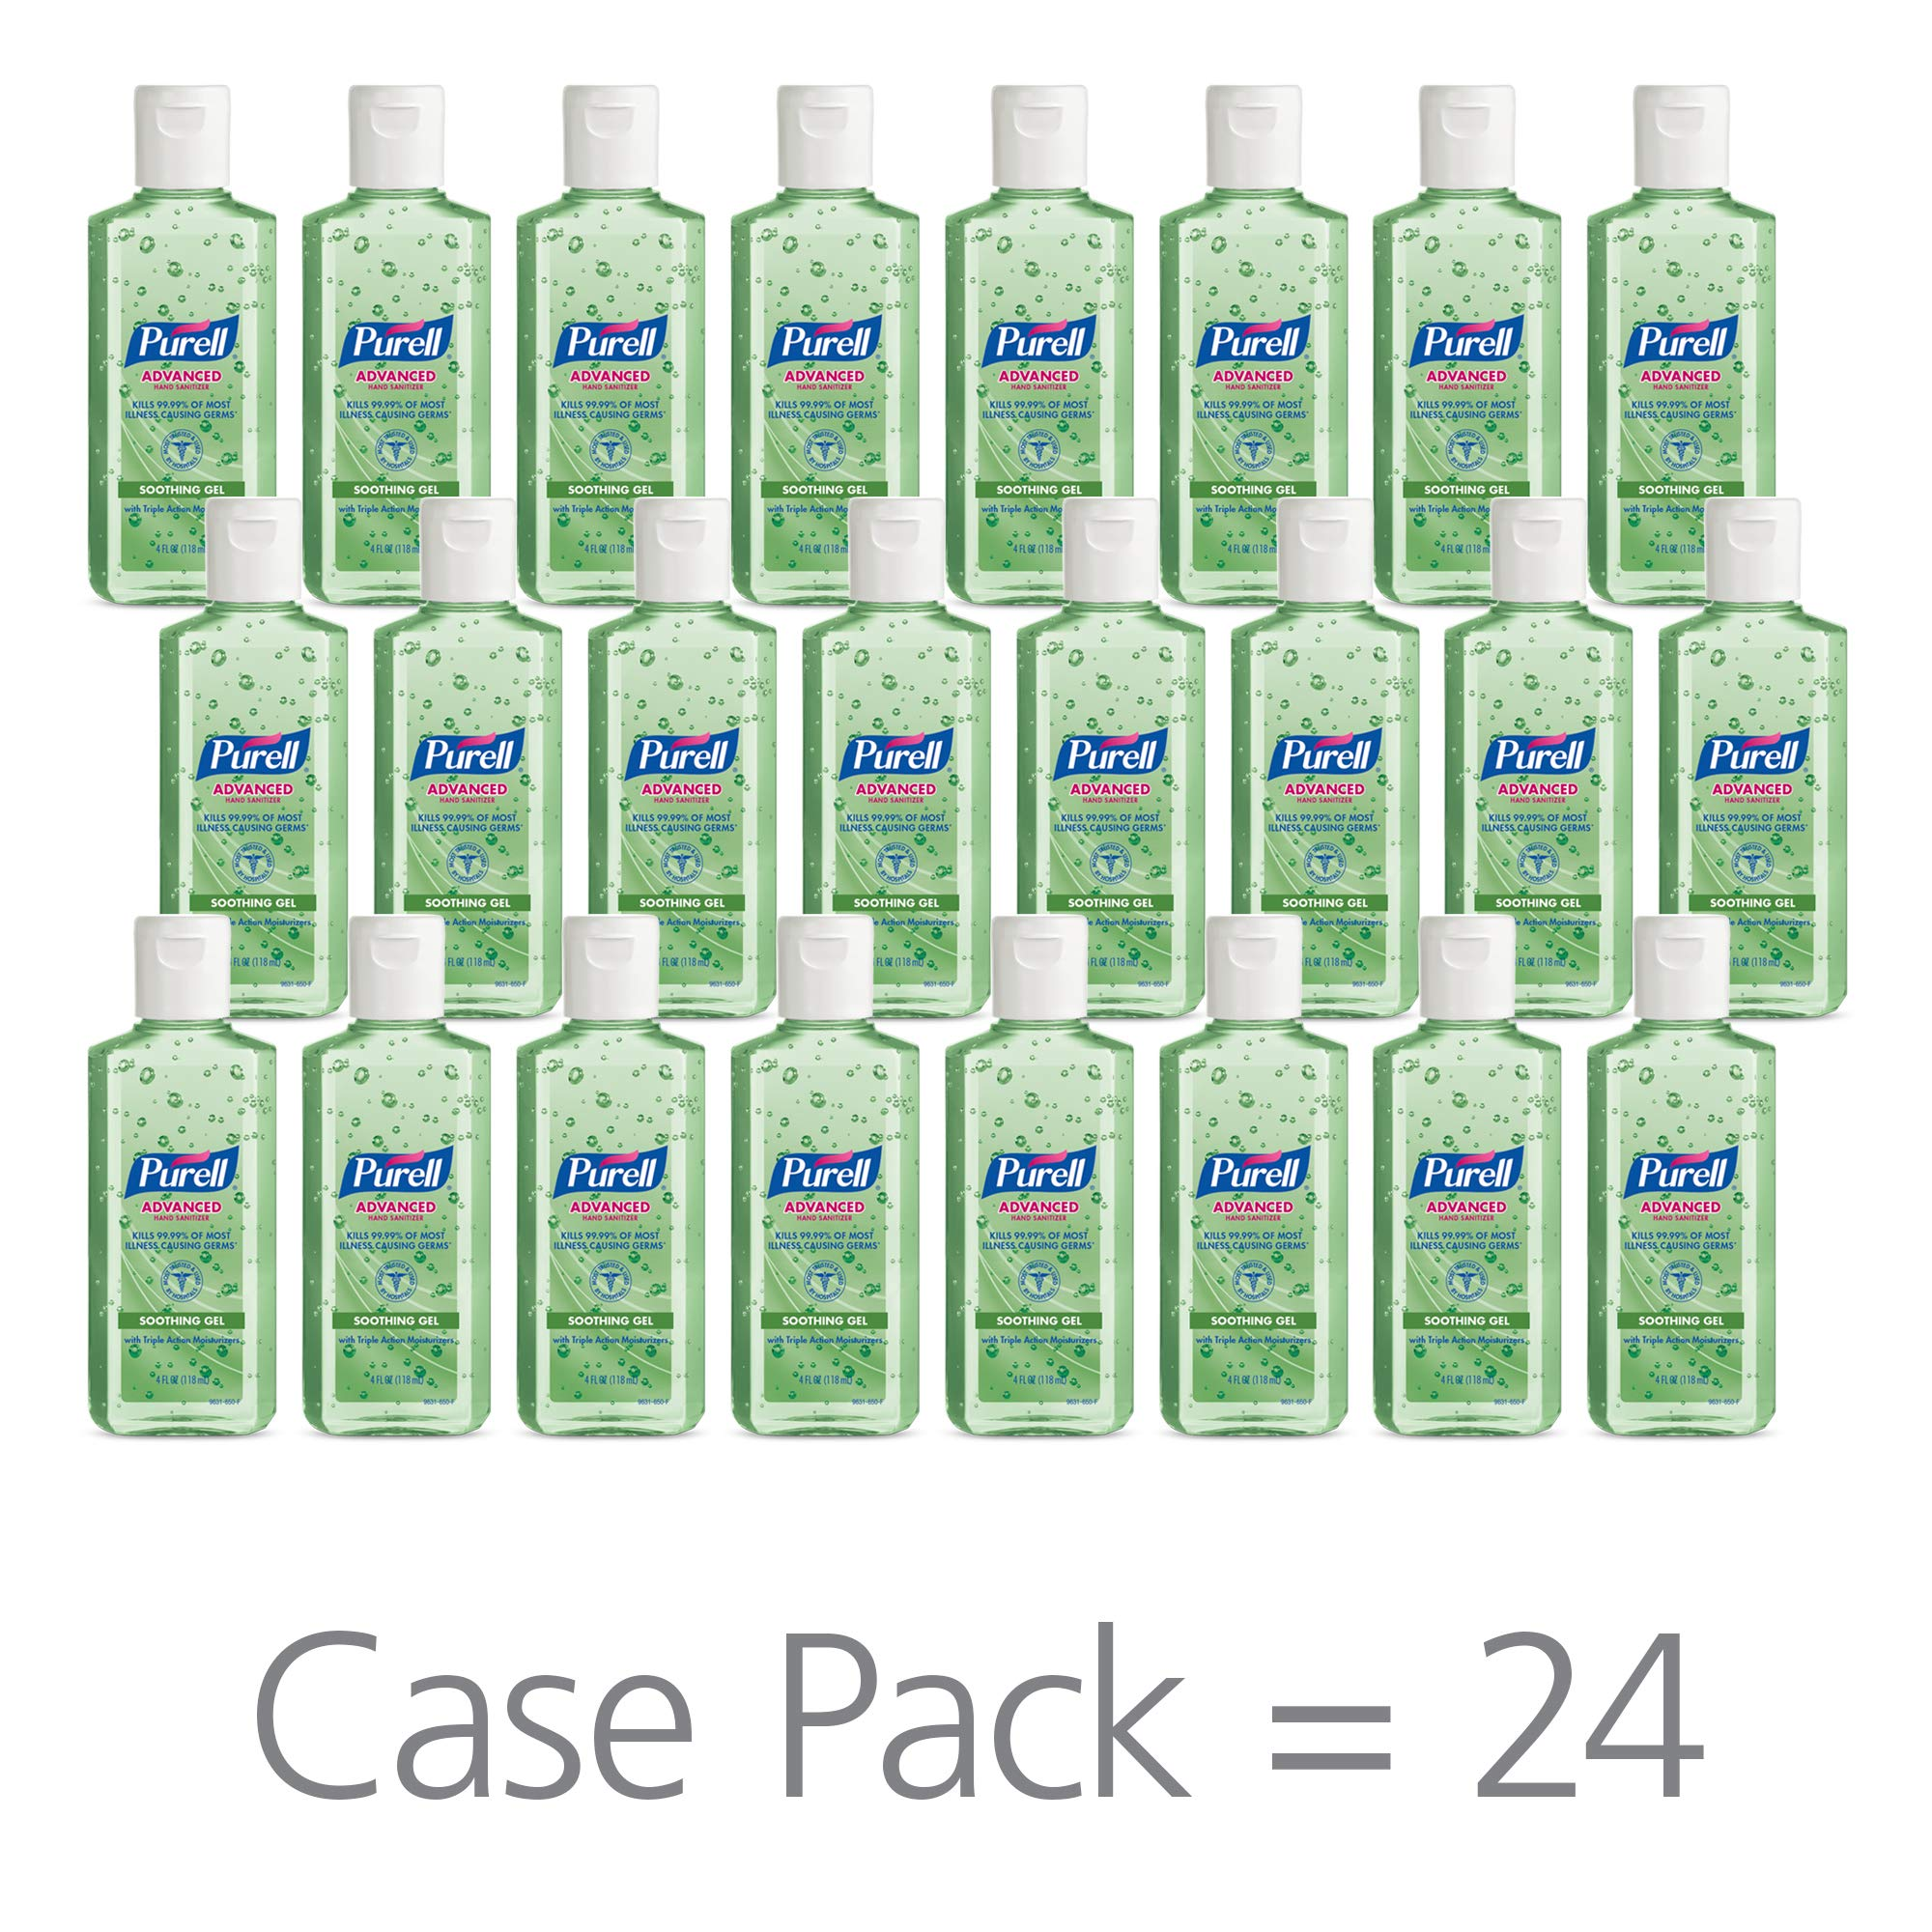 PURELL Advanced Hand Sanitizer Soothing Gel for The Workplace, Fresh Scent, with Aloe and Vitamin E - 4 fl oz flip Cap Bottle (Pack of 24) - 9631-24 by Purell